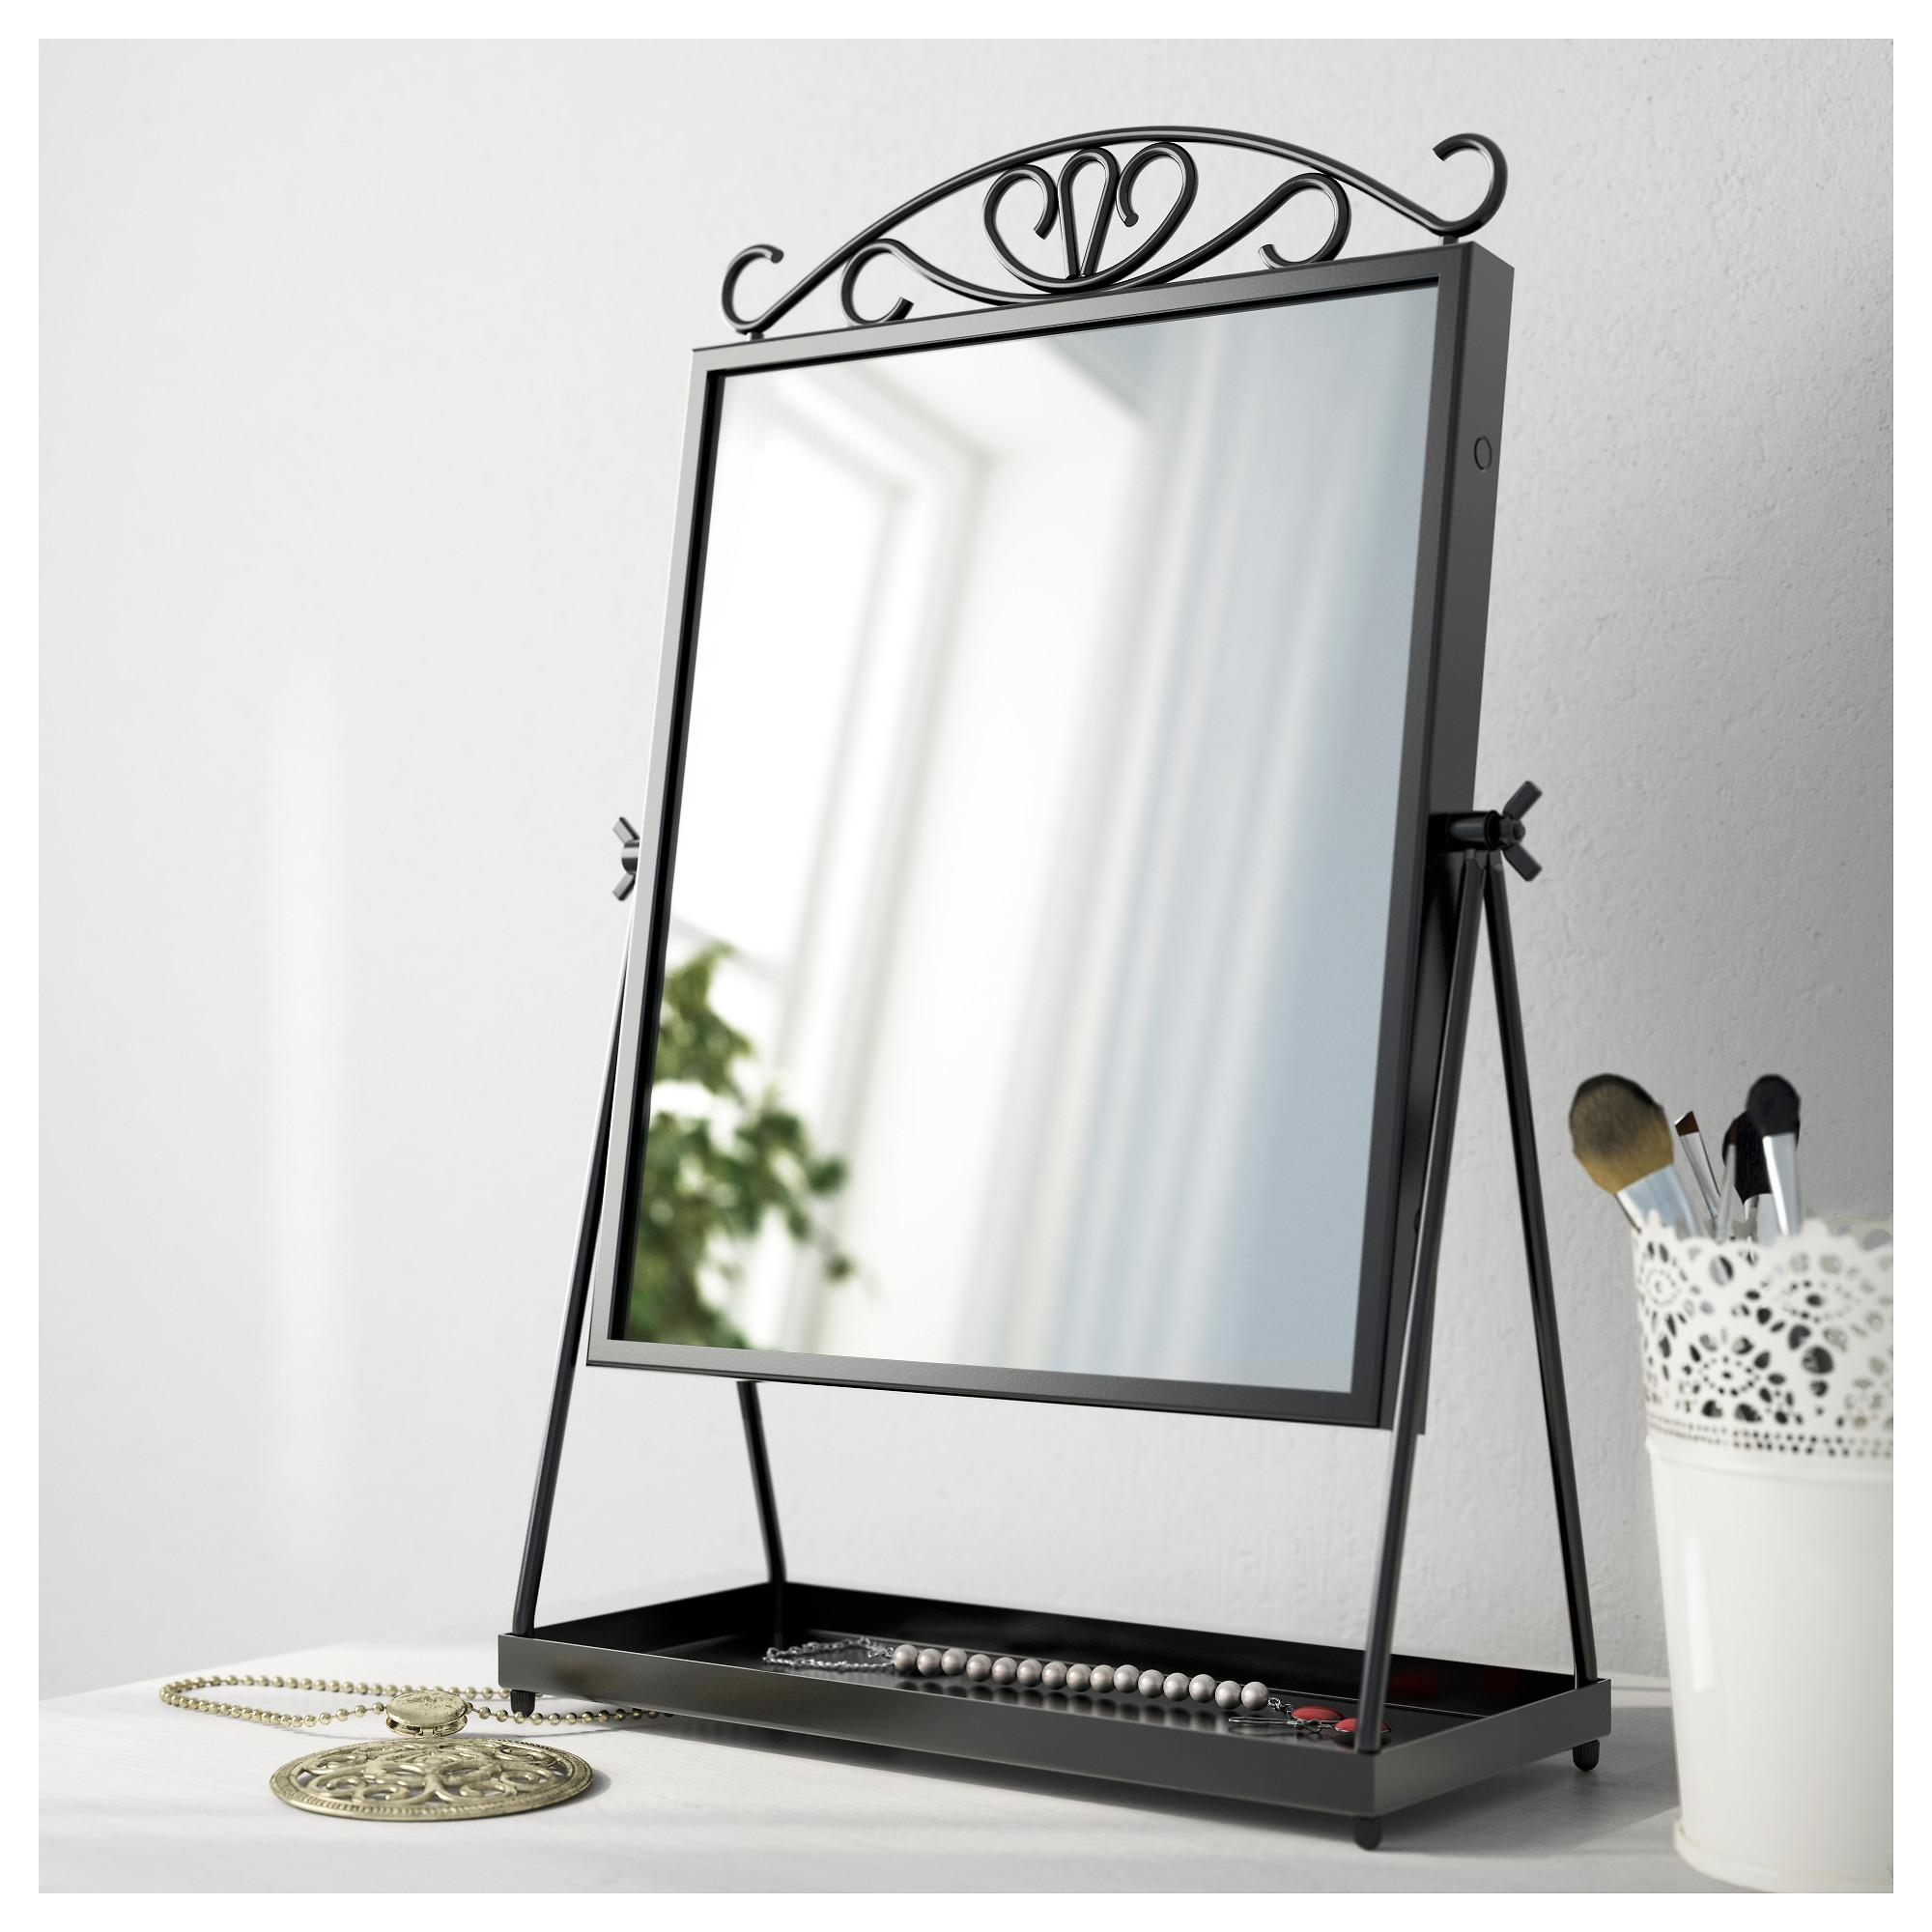 Karmsund Table Mirror Black 27X43 Cm – Ikea Within Standing Table Mirror (Image 9 of 20)